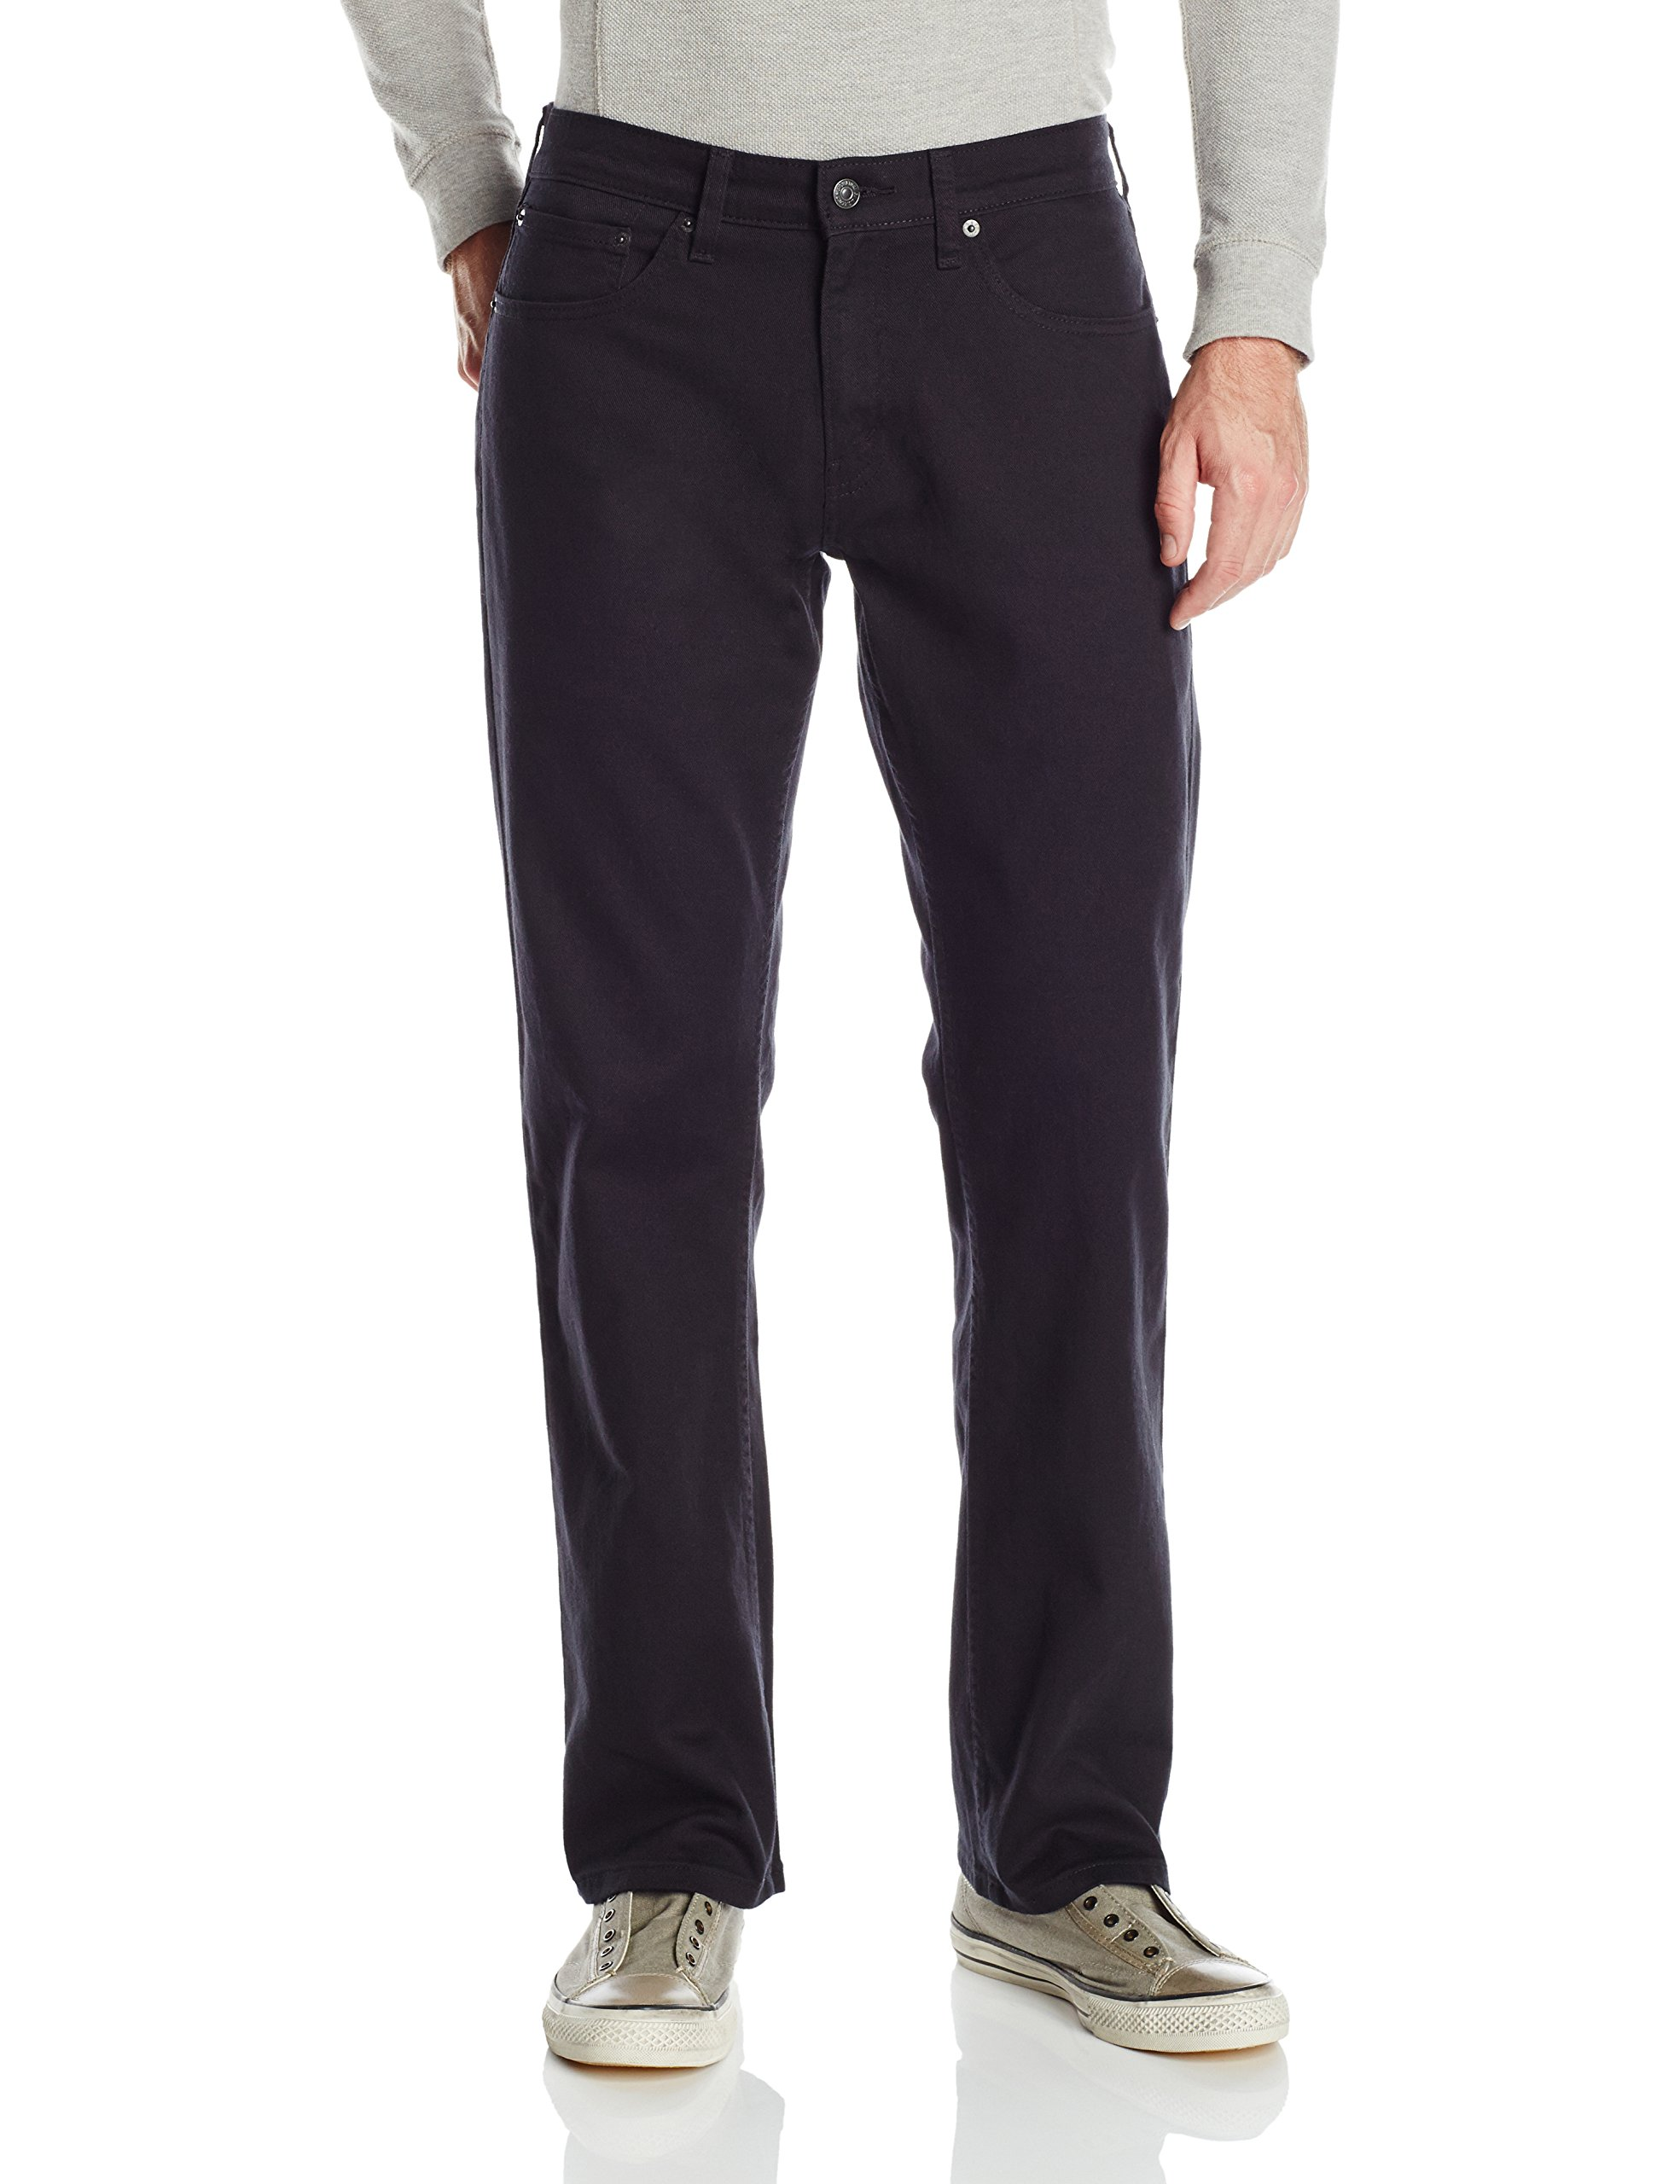 Signature by Levi Strauss & Co Men's Relaxed Jean, Gothic, 34x36 by Signature by Levi Strauss & Co. Gold Label